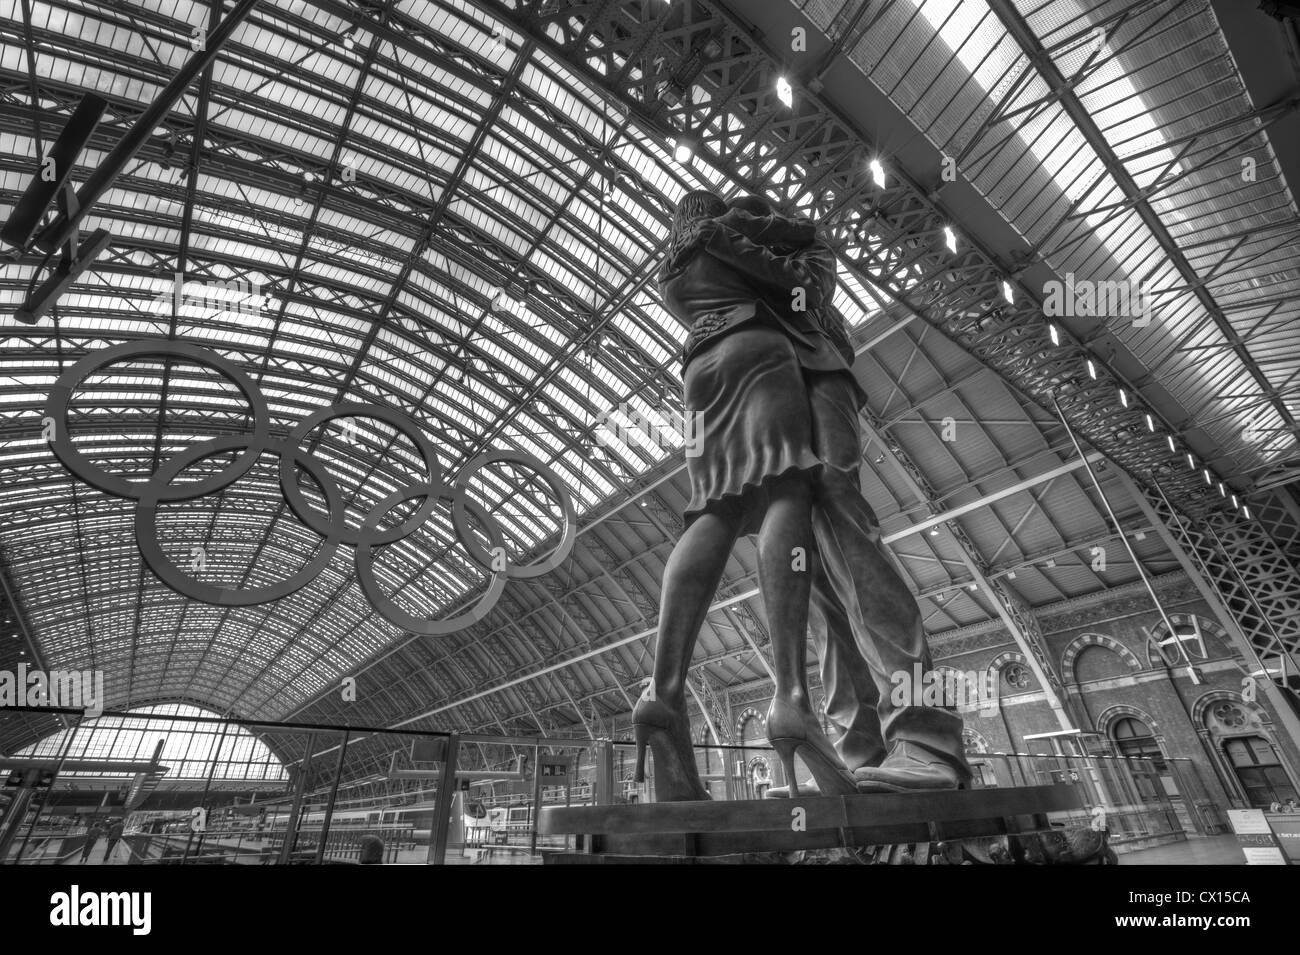 """Paul Day's sculpture """"The Meeting Place"""" at St Pancras Station in London. Stock Photo"""